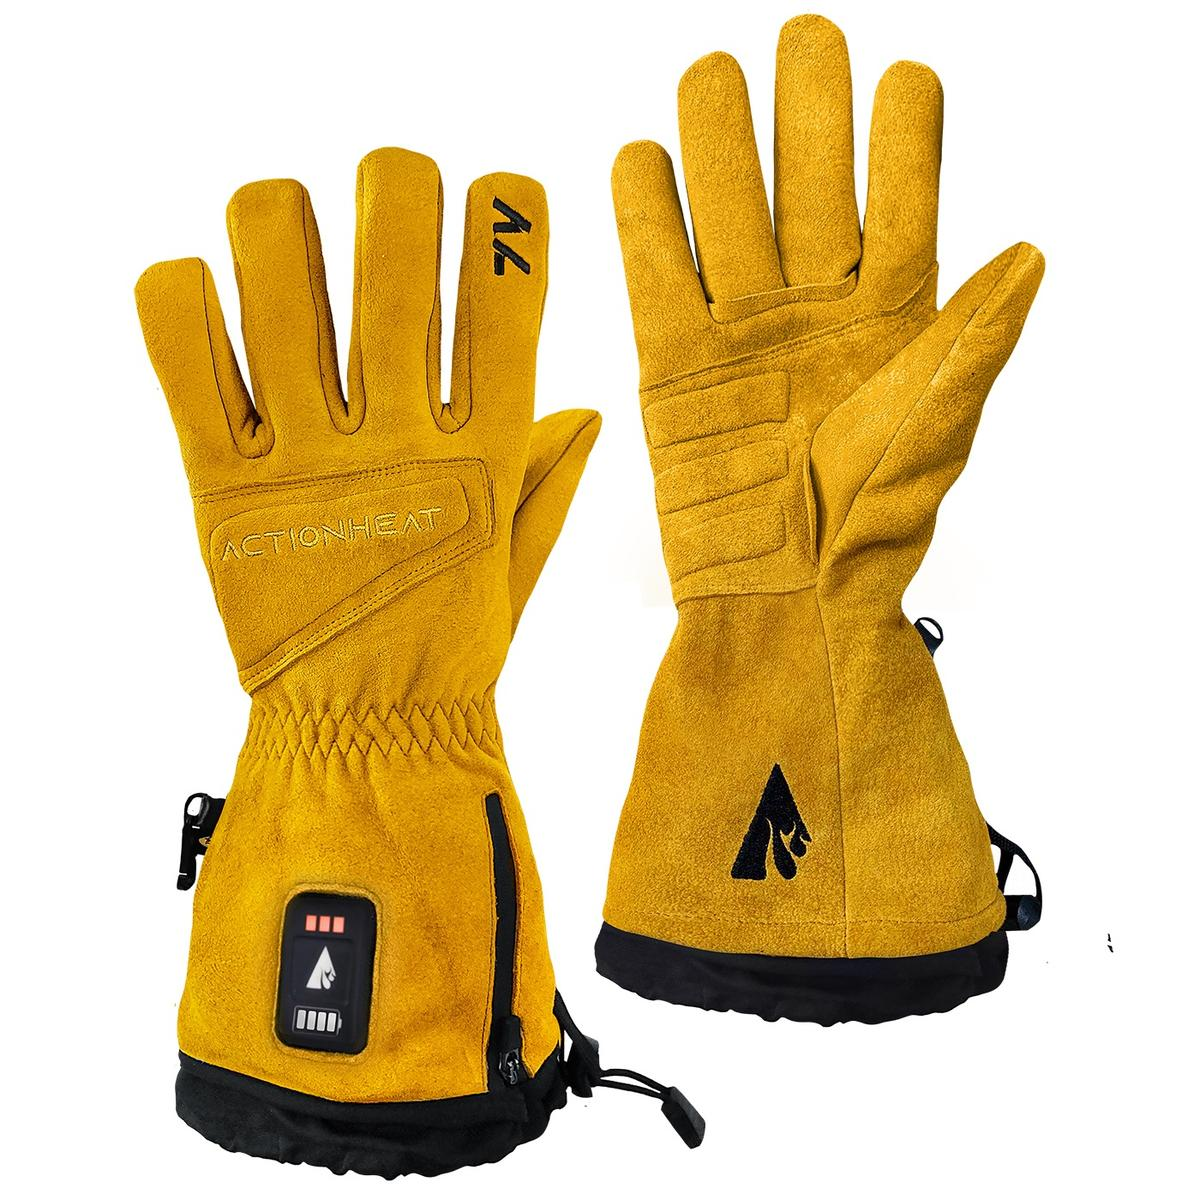 ActionHeat 7V Rugged Leather Heated Work Gloves - Heated